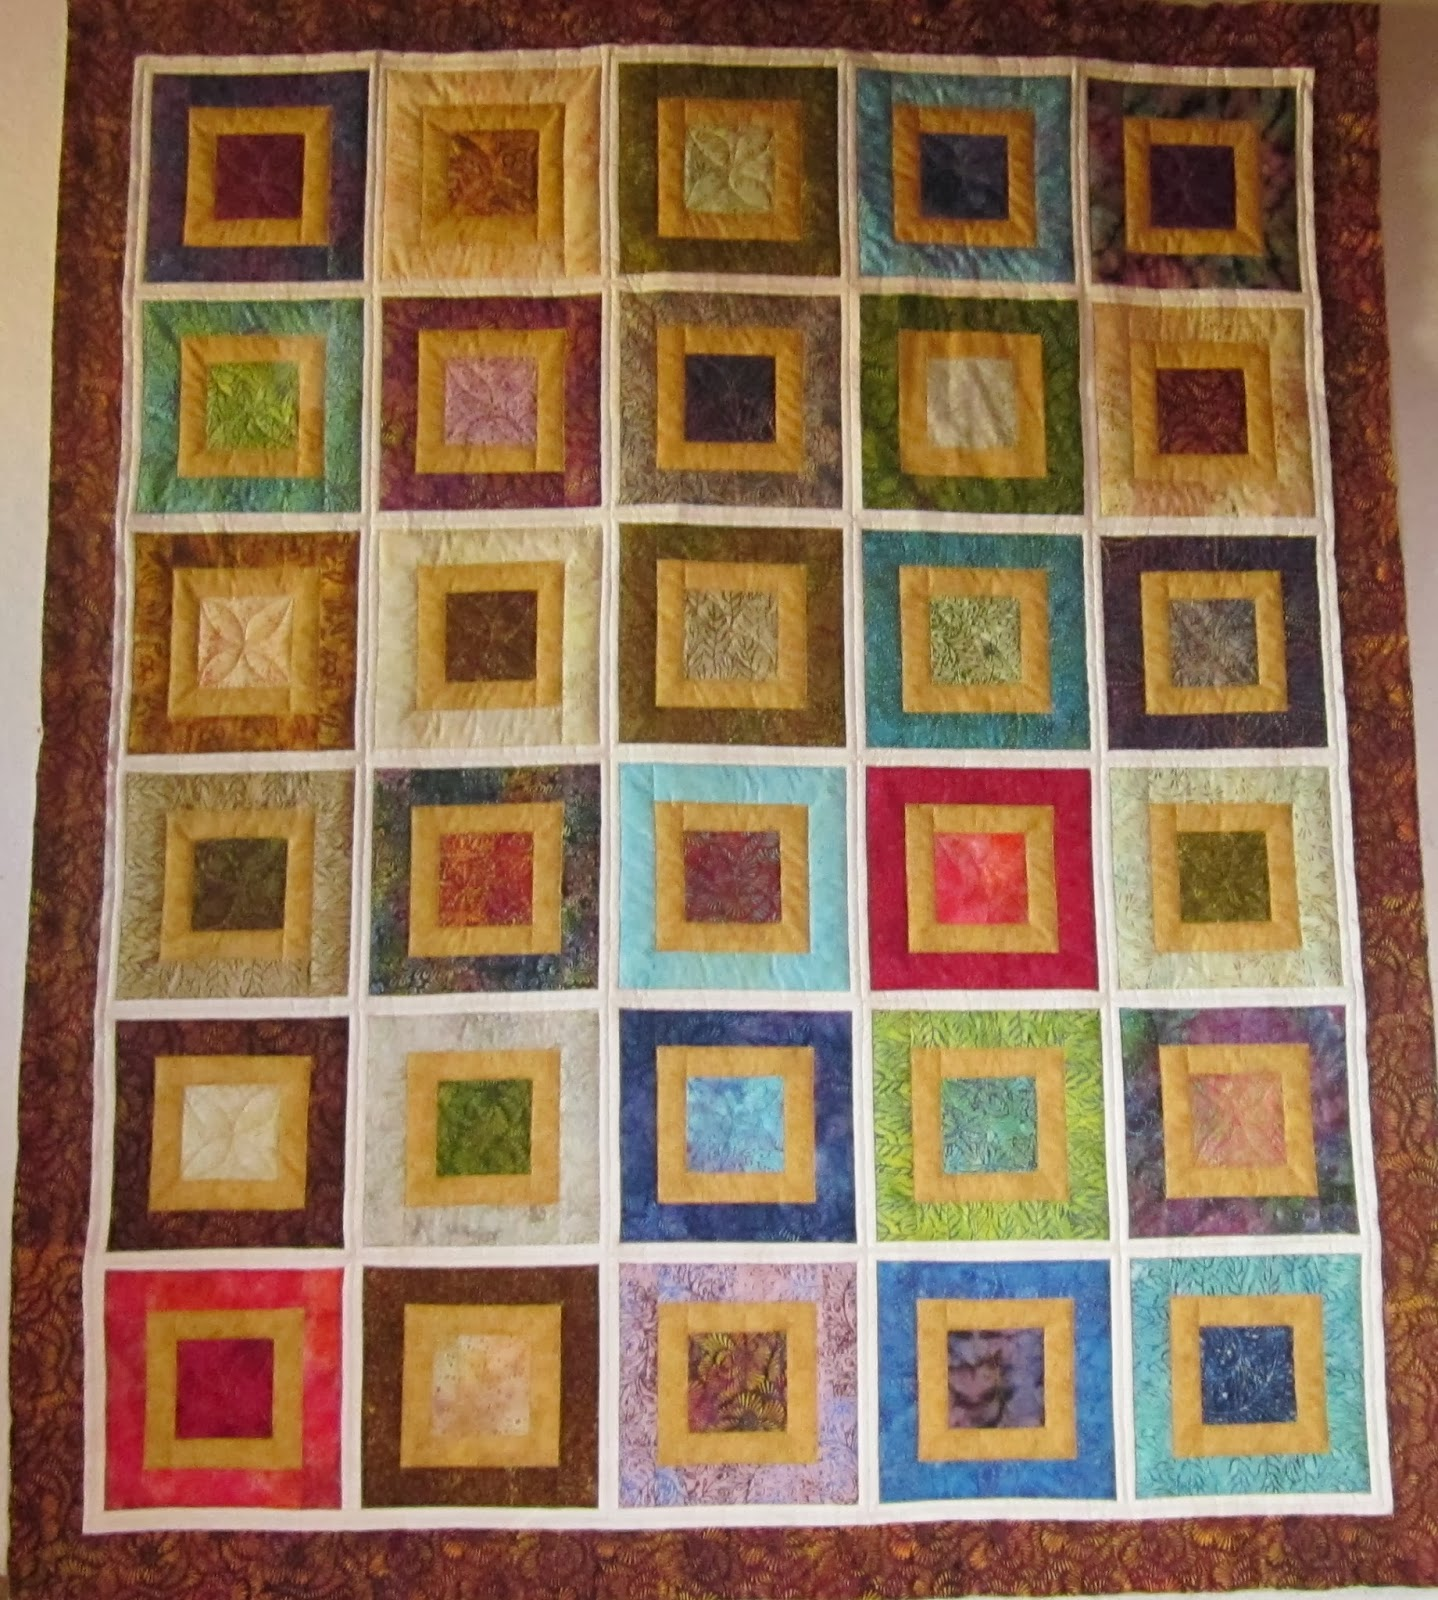 http://quiltparadigm.blogspot.com/2014/02/a-friday-finish.html